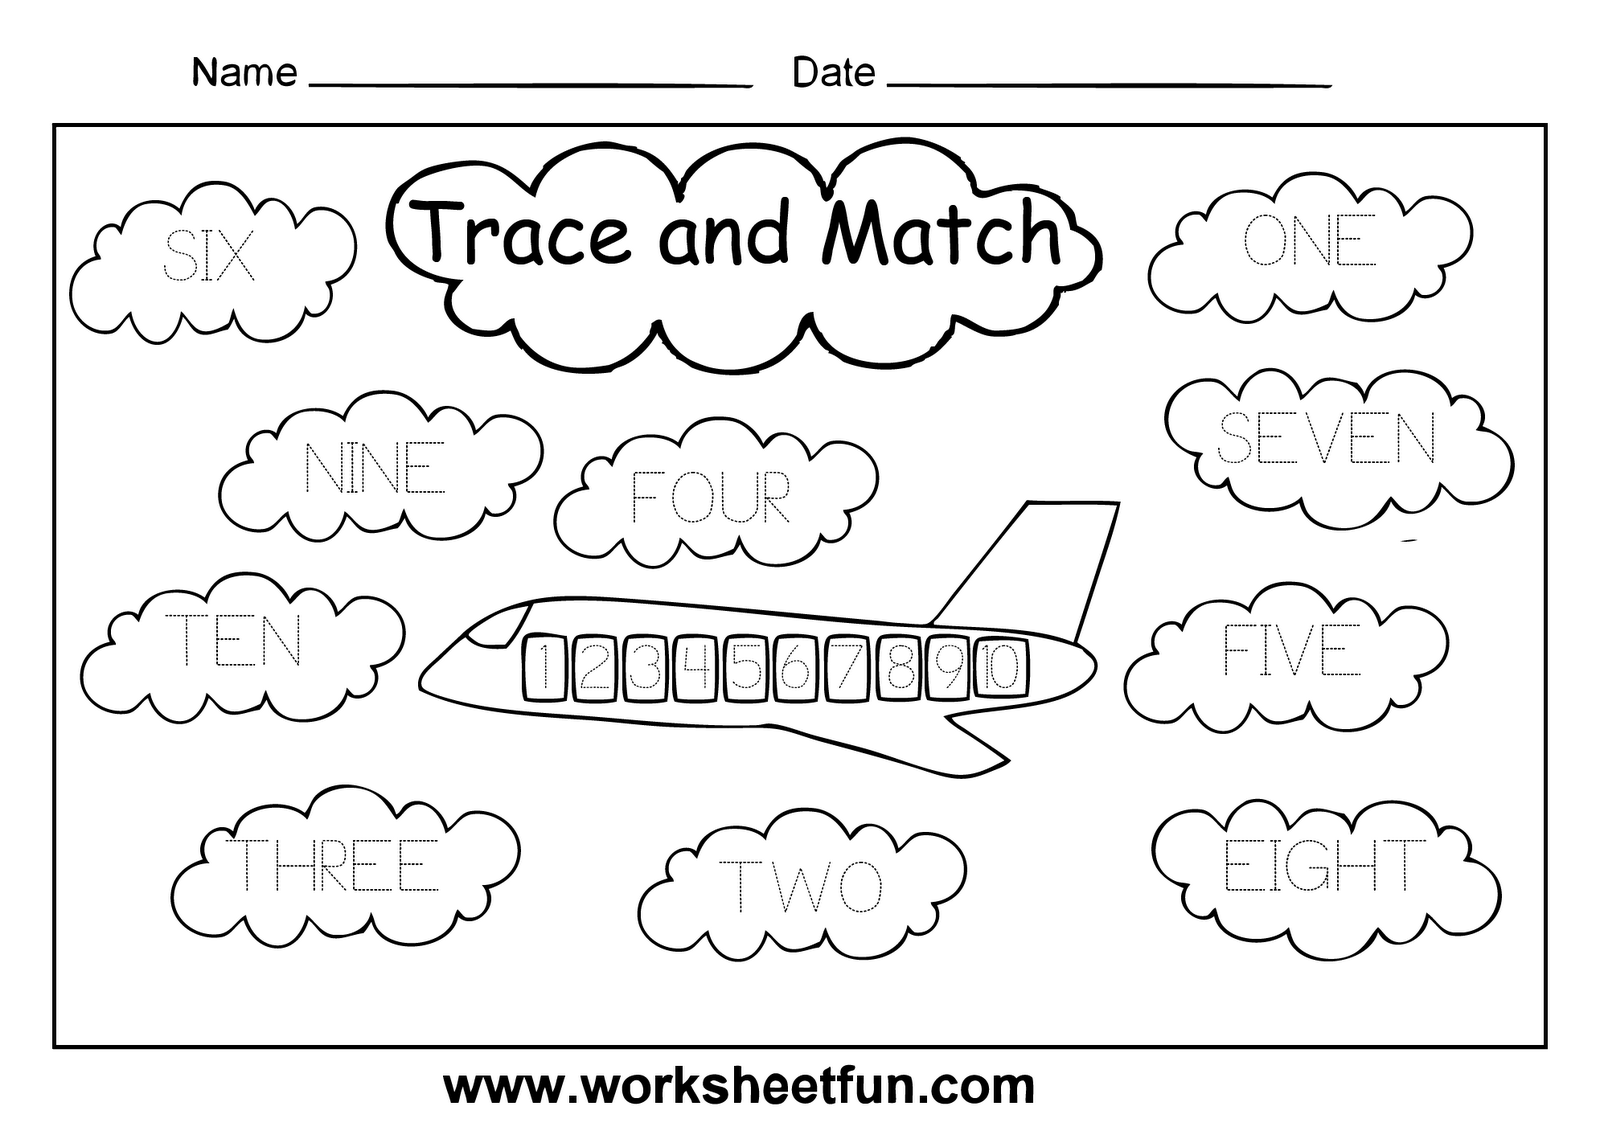 Weirdmailus  Outstanding Worksheet Numbers    Reocurent With Interesting Sit And Set Worksheet Besides Compound Worksheets Furthermore Worksheet Trial Balance And Adjustments With Charming Movement Of The Body Worksheet Also Greek Roots Worksheet In Addition Writing Story Worksheets And Verb Tense Shift Worksheets As Well As Reading With Understanding Worksheets Additionally Learn To Write Kindergarten Worksheets From Reocurentcom With Weirdmailus  Interesting Worksheet Numbers    Reocurent With Charming Sit And Set Worksheet Besides Compound Worksheets Furthermore Worksheet Trial Balance And Adjustments And Outstanding Movement Of The Body Worksheet Also Greek Roots Worksheet In Addition Writing Story Worksheets From Reocurentcom